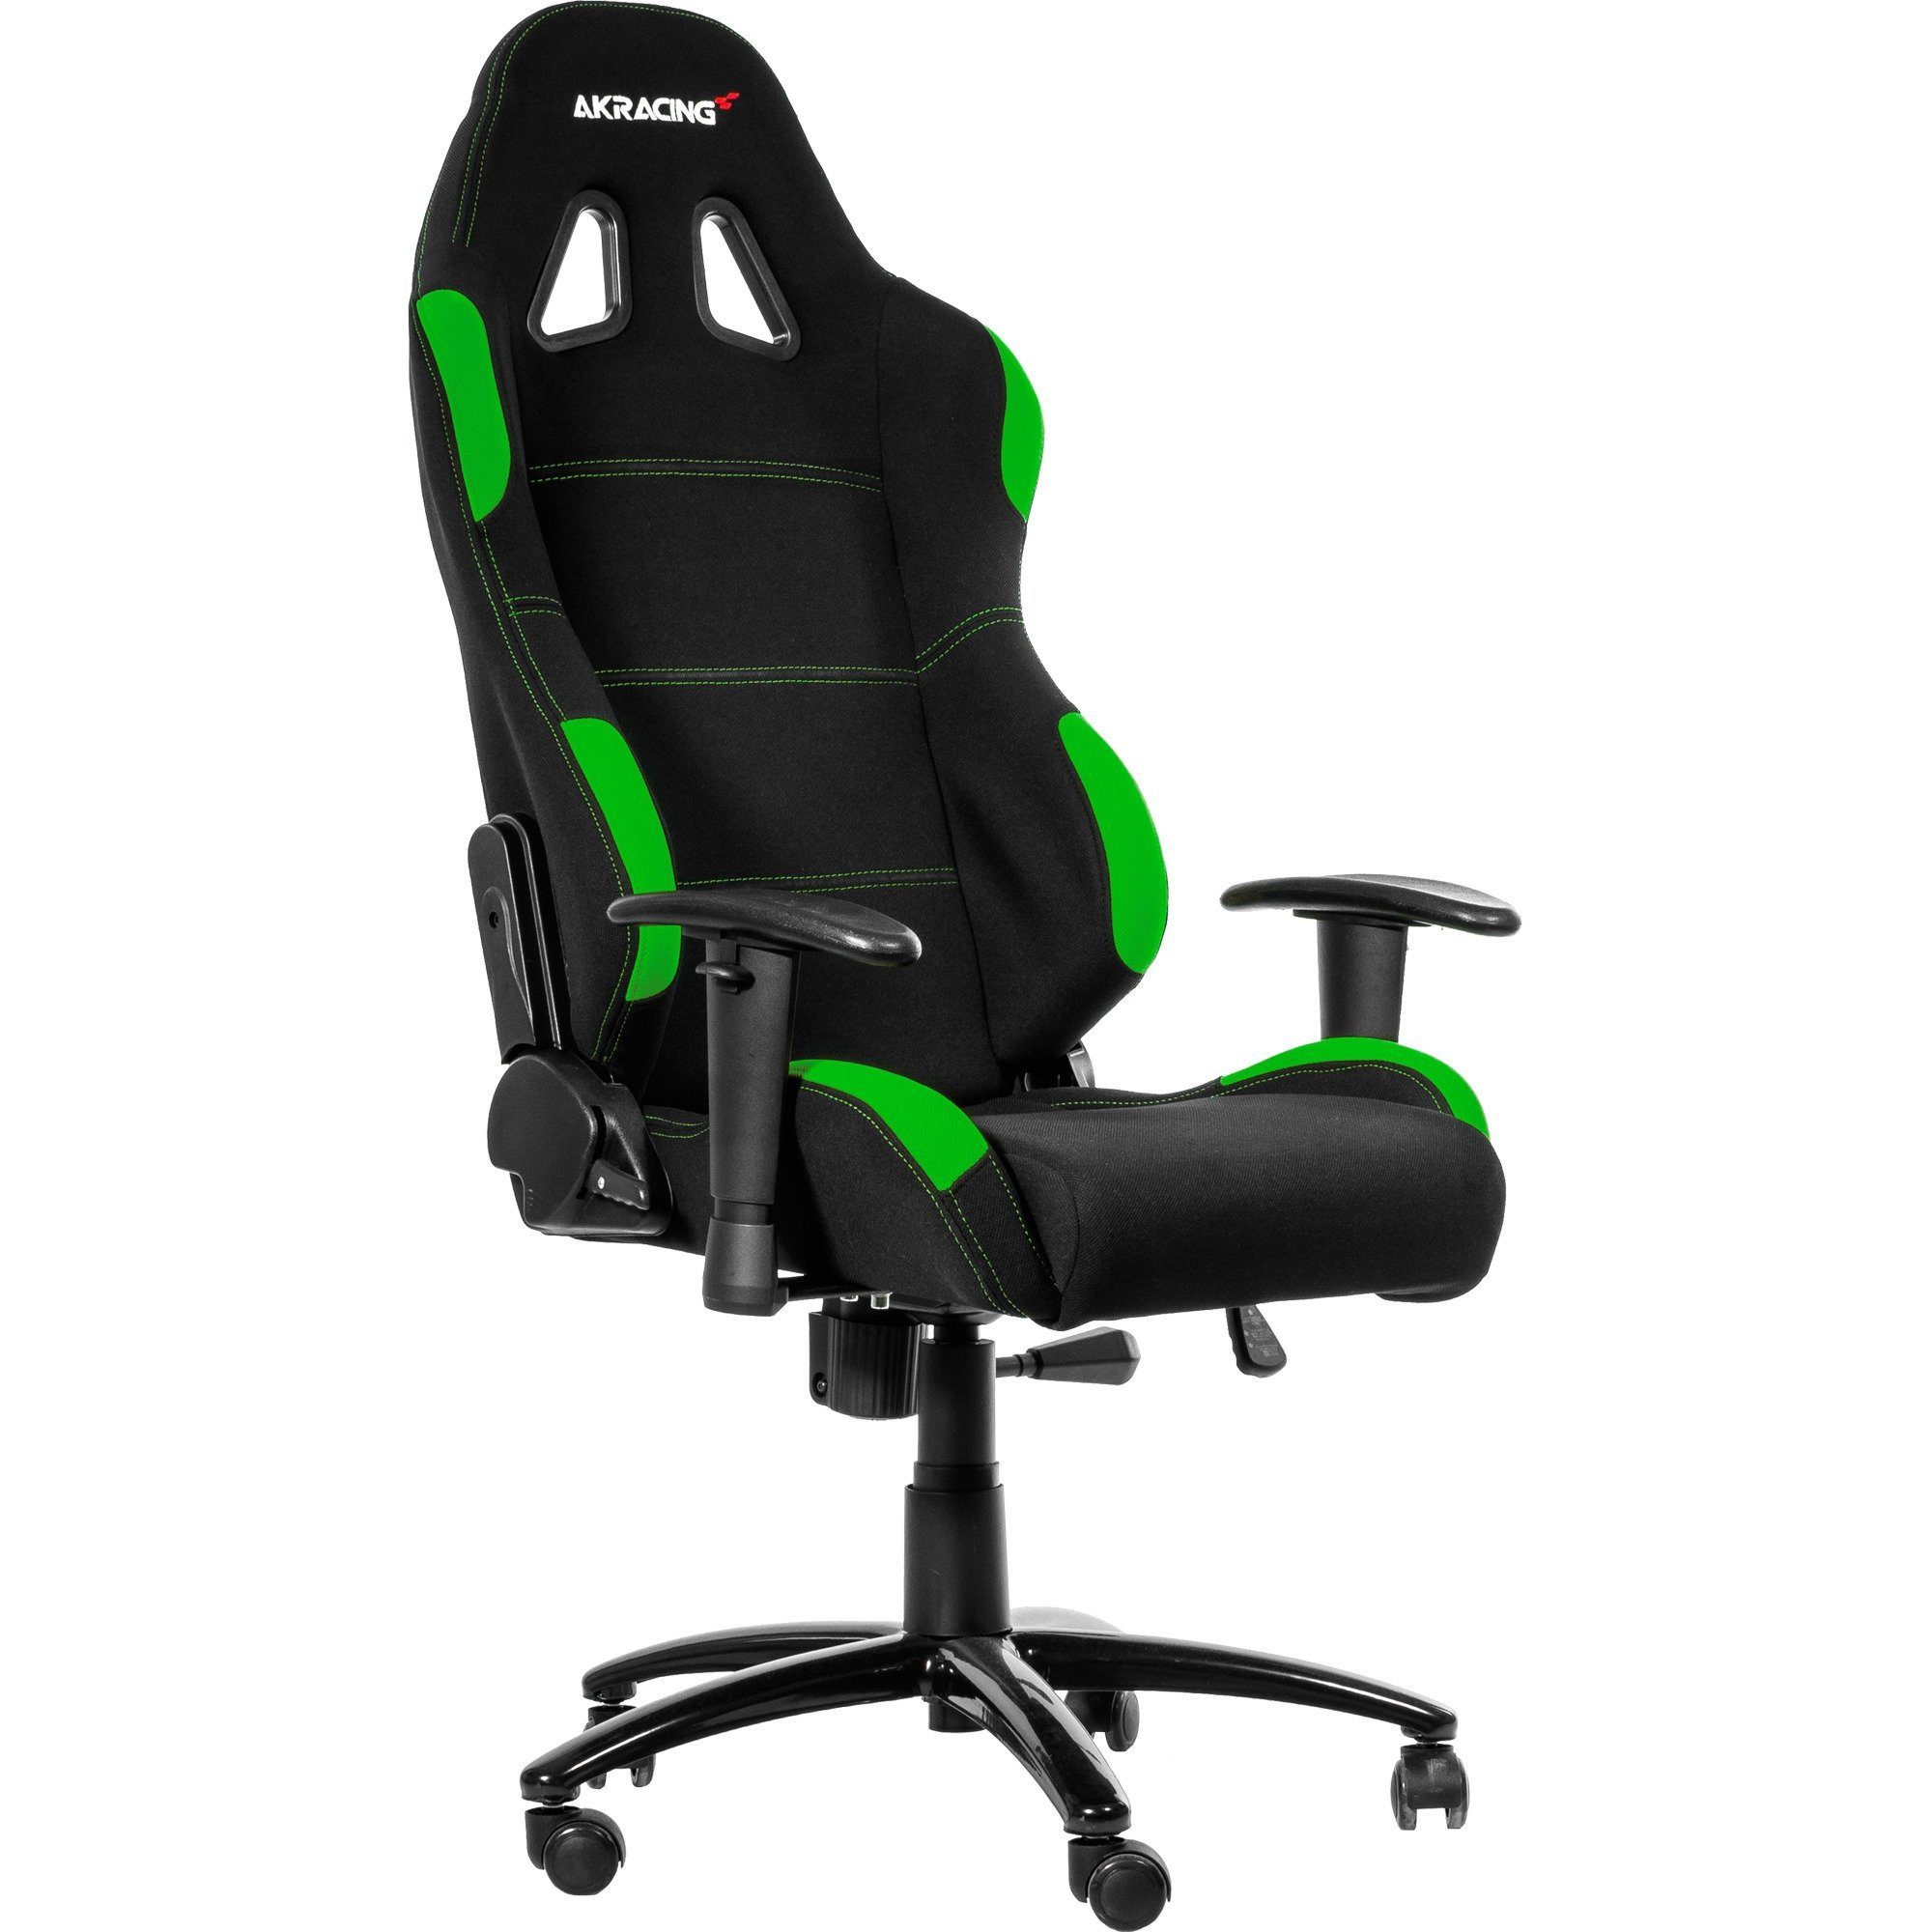 AKRACING Spielsitz »Gaming Chair«